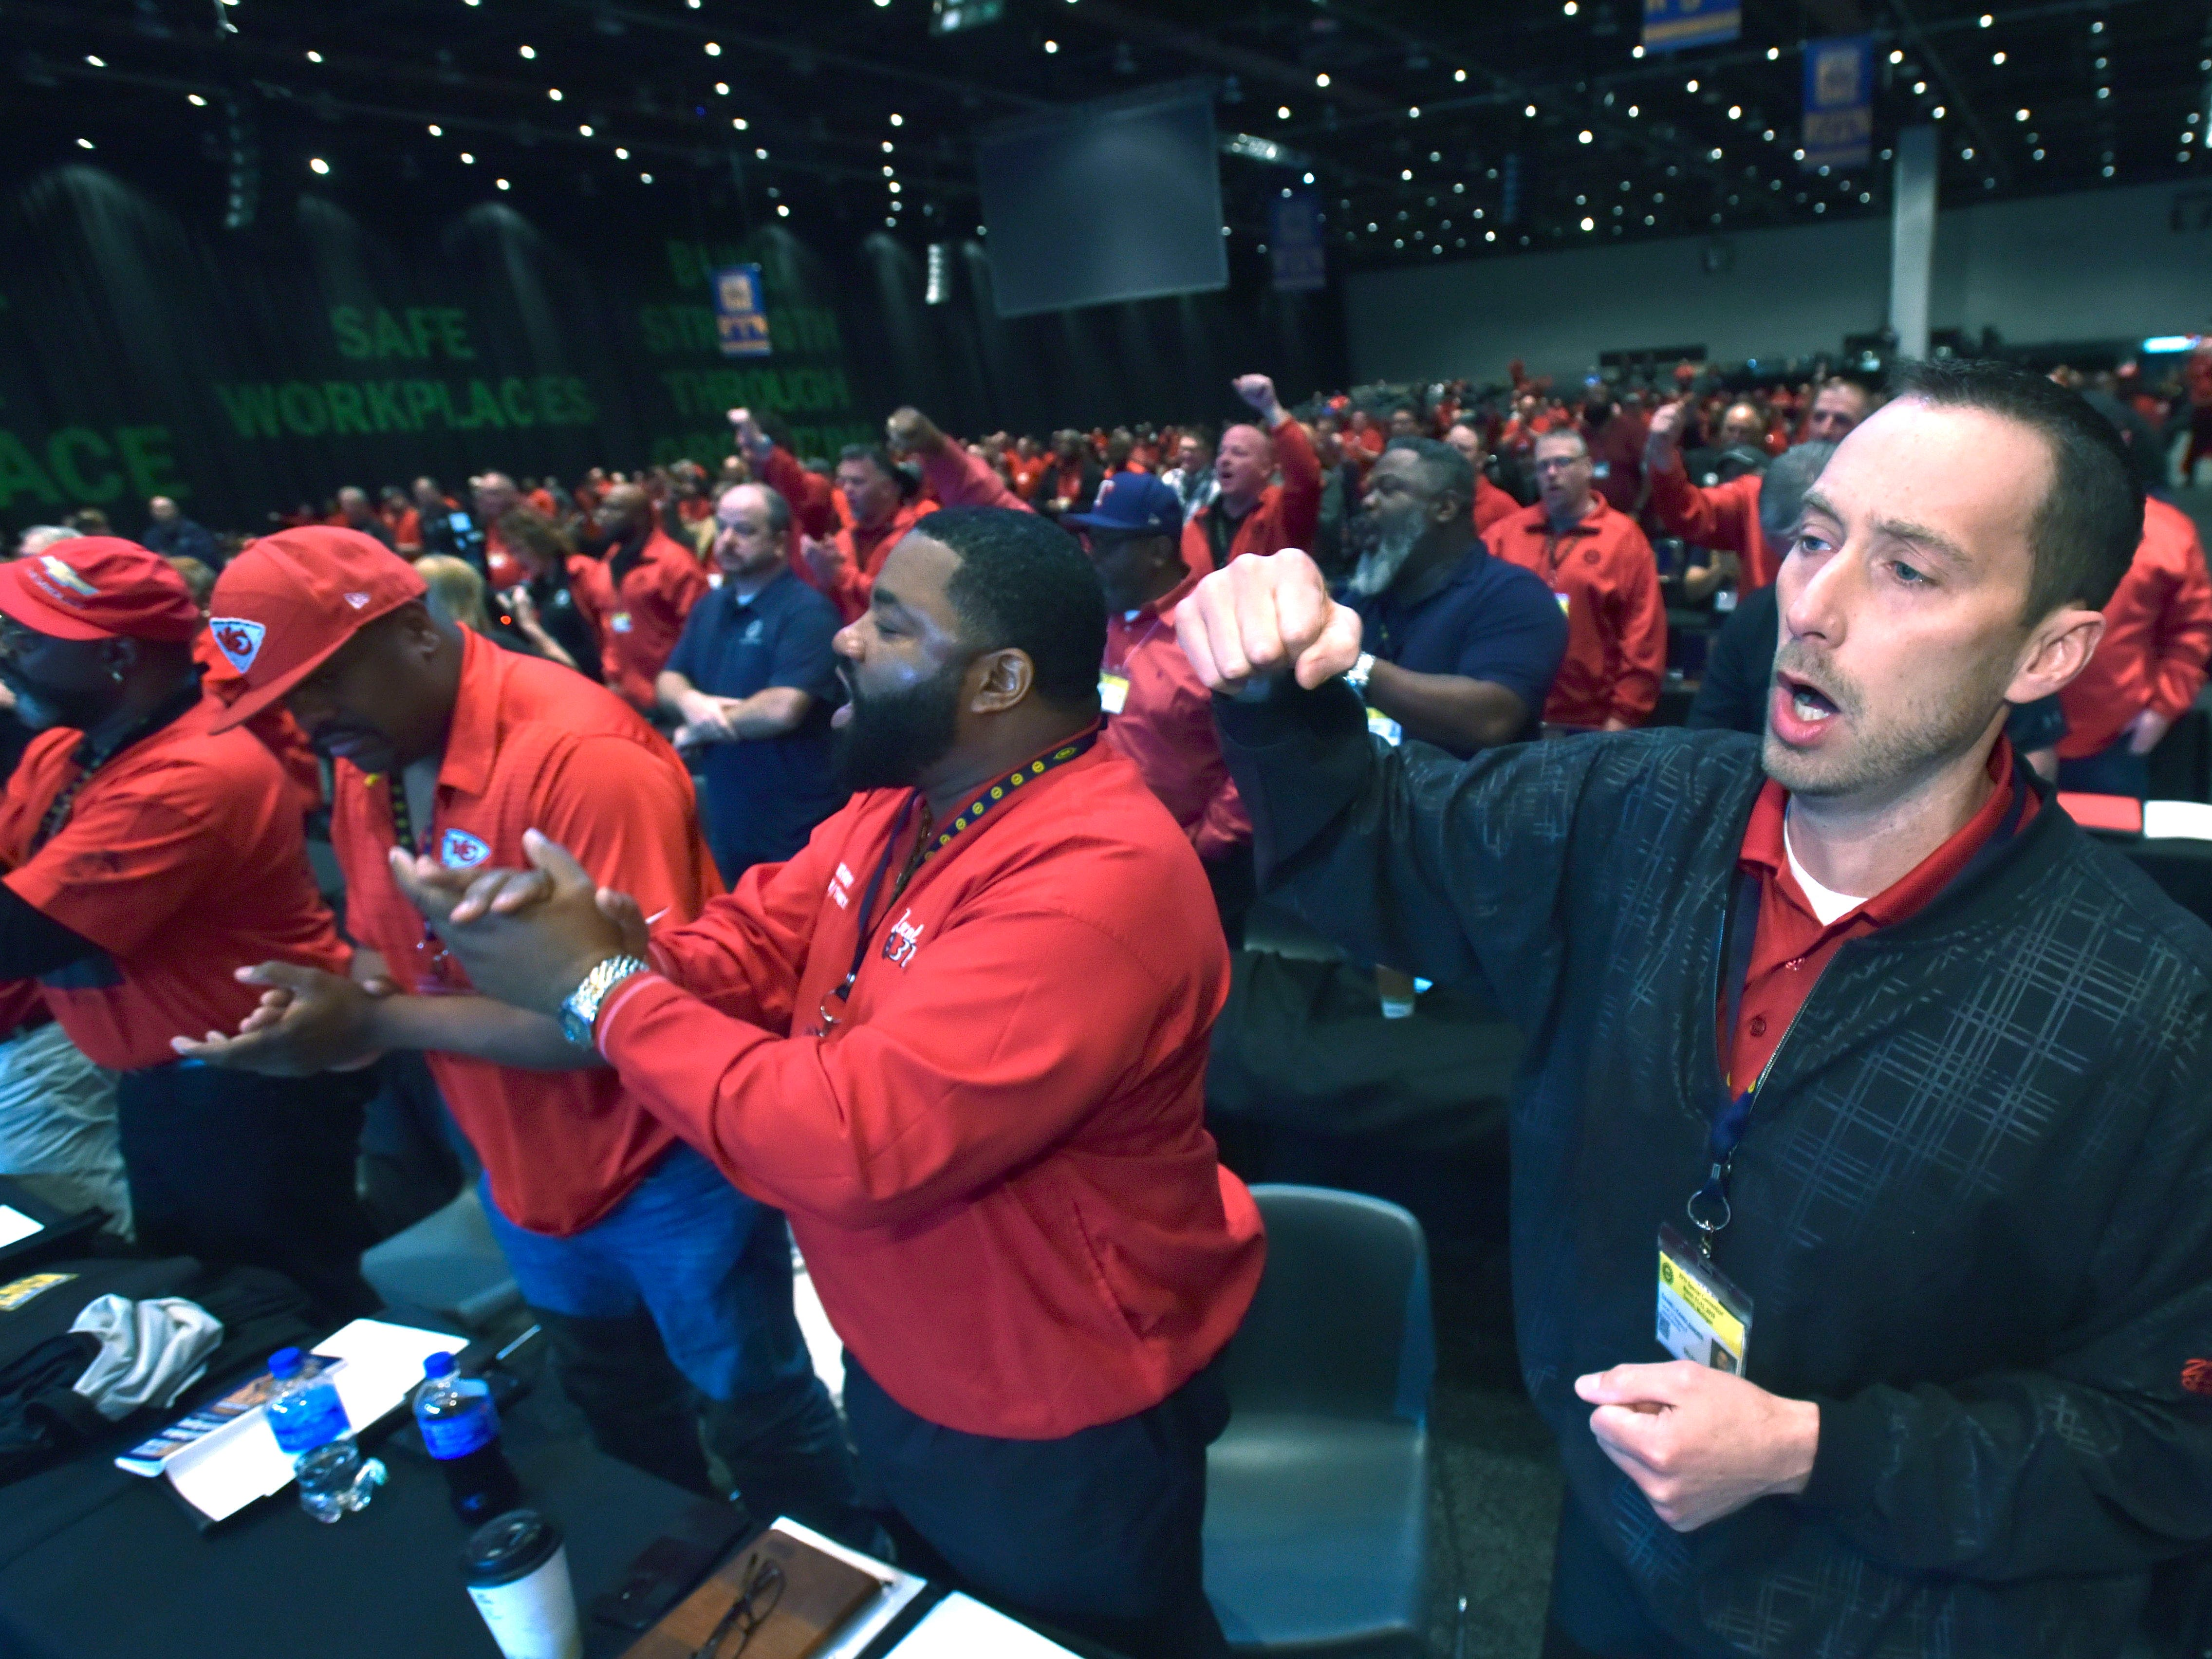 From right, Region 5 Local 31 UAW delegates Dan Kandlbinder and Anthony Walker, both of Kansas City, Missouri, cheer during UAW Gary Jones' address.